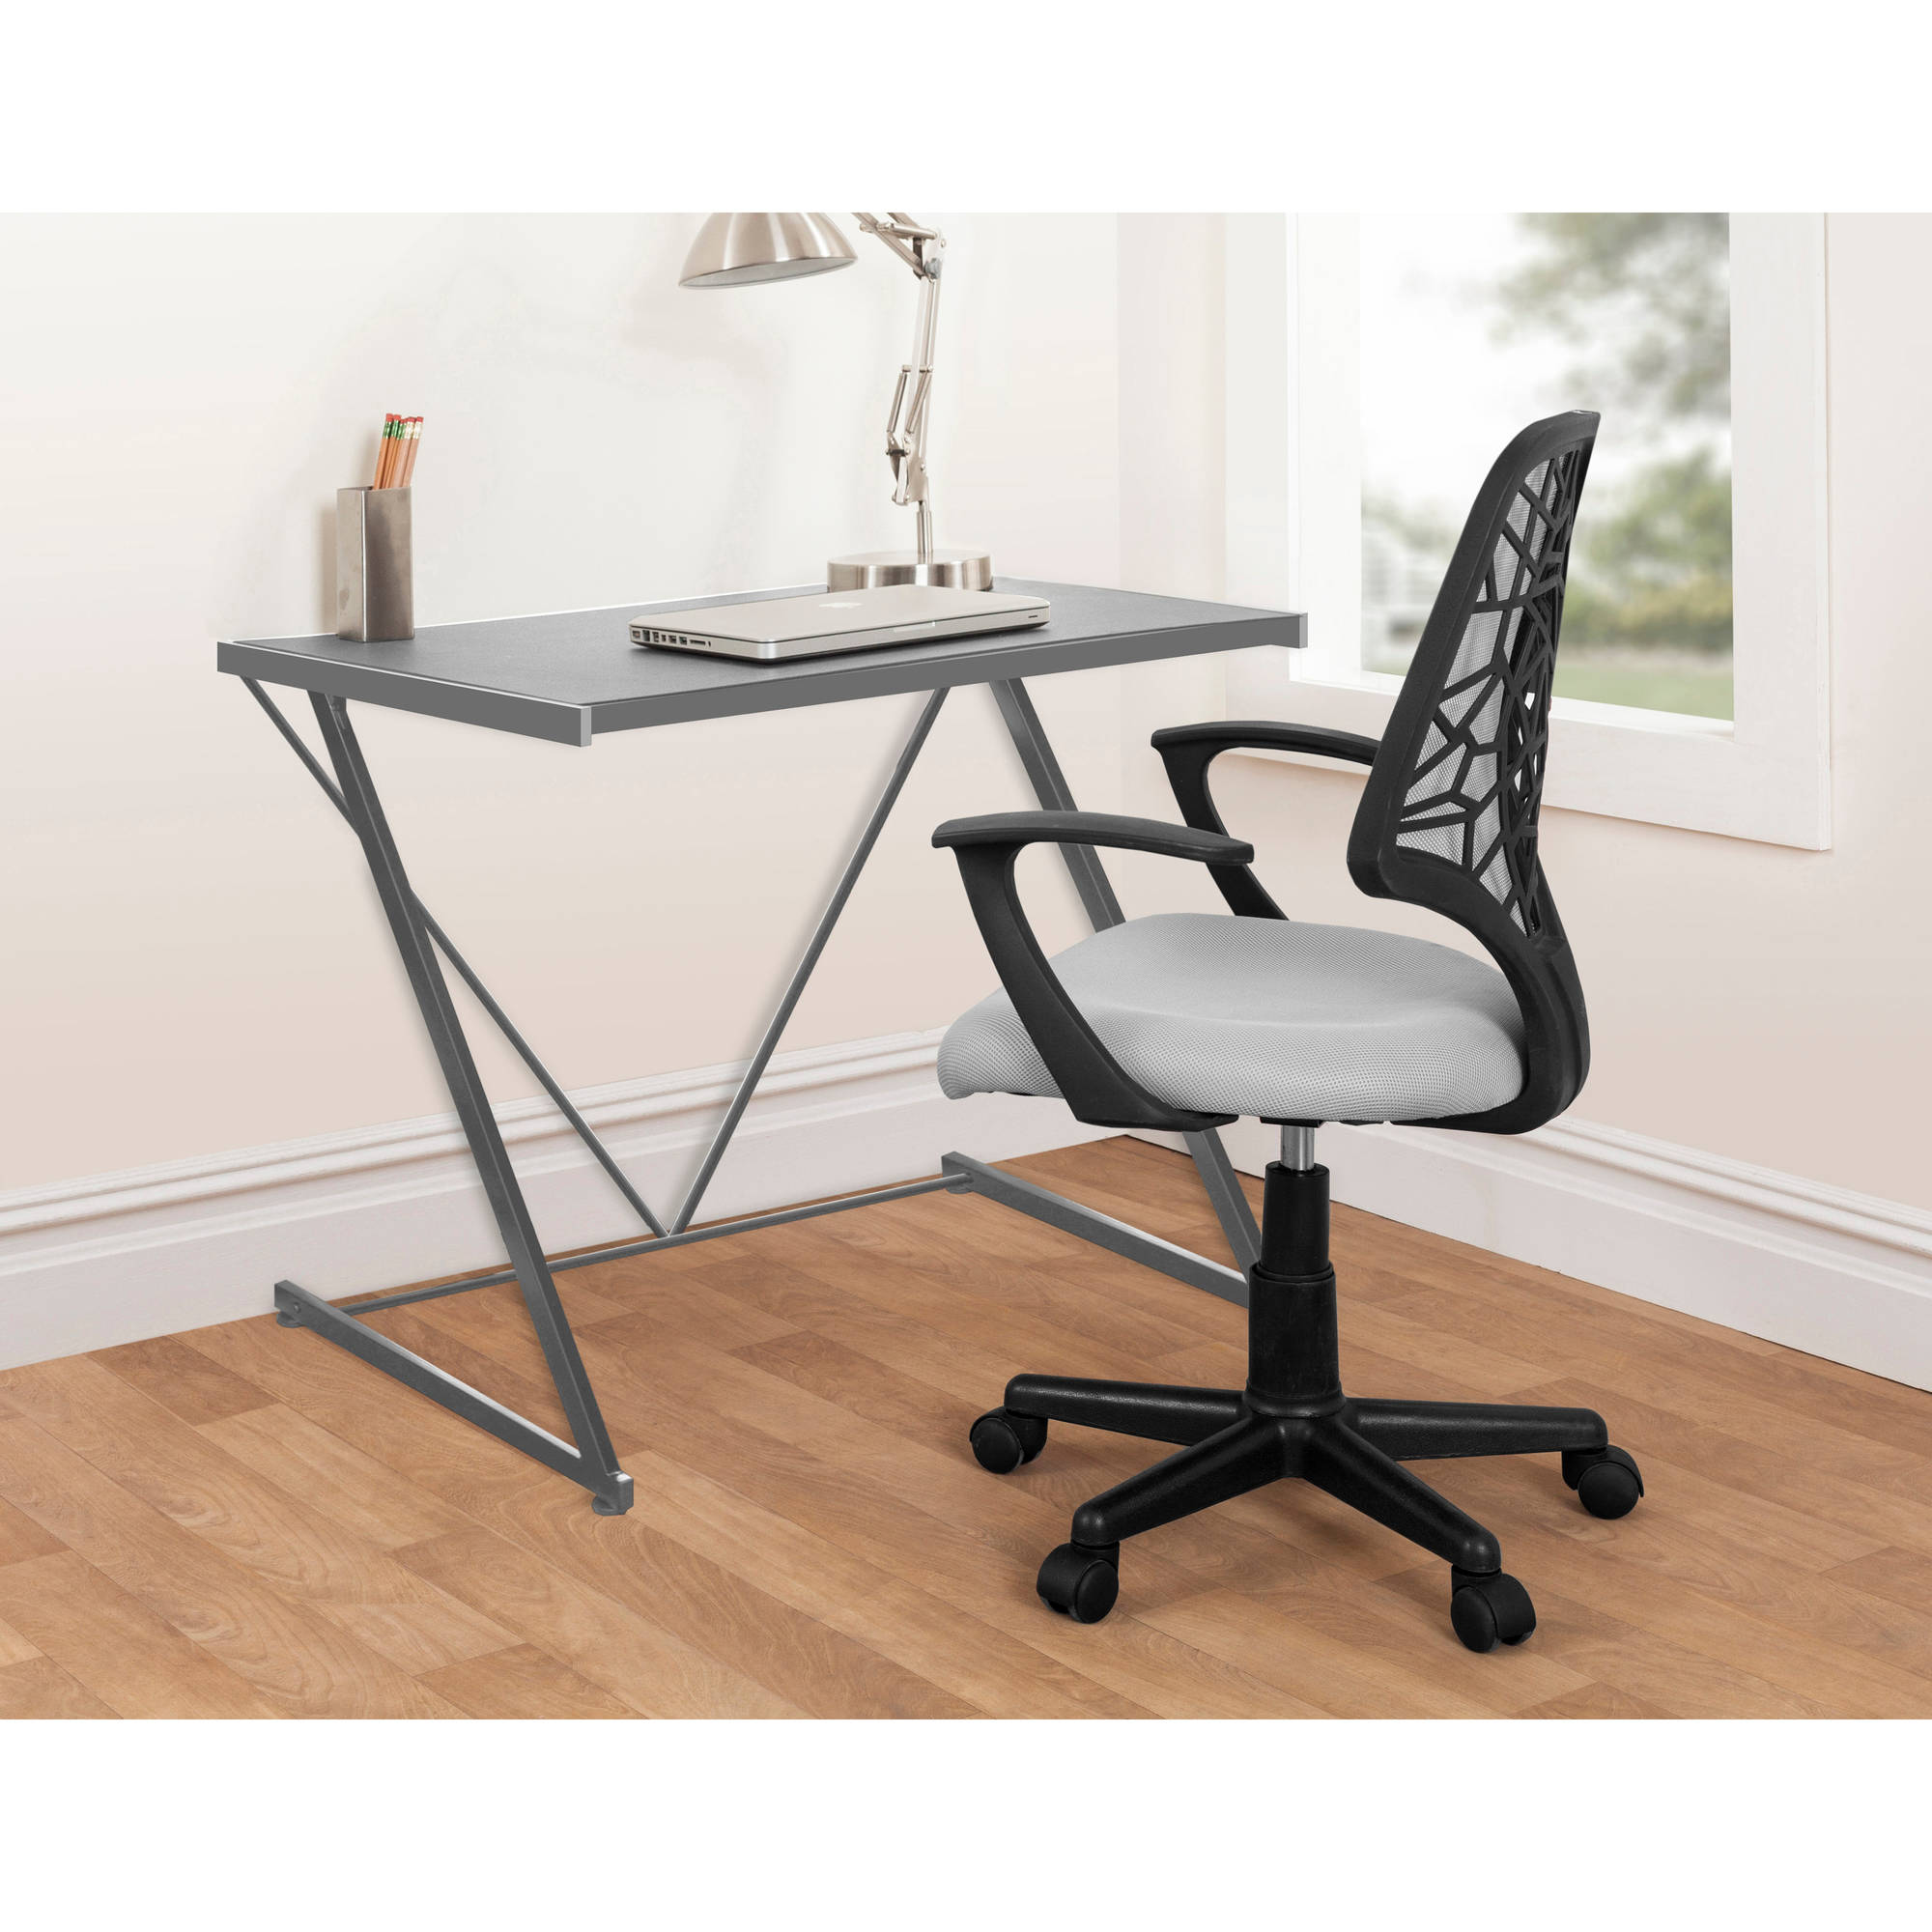 Urban Shop Z-Shaped Student Desk, Multiple Colors